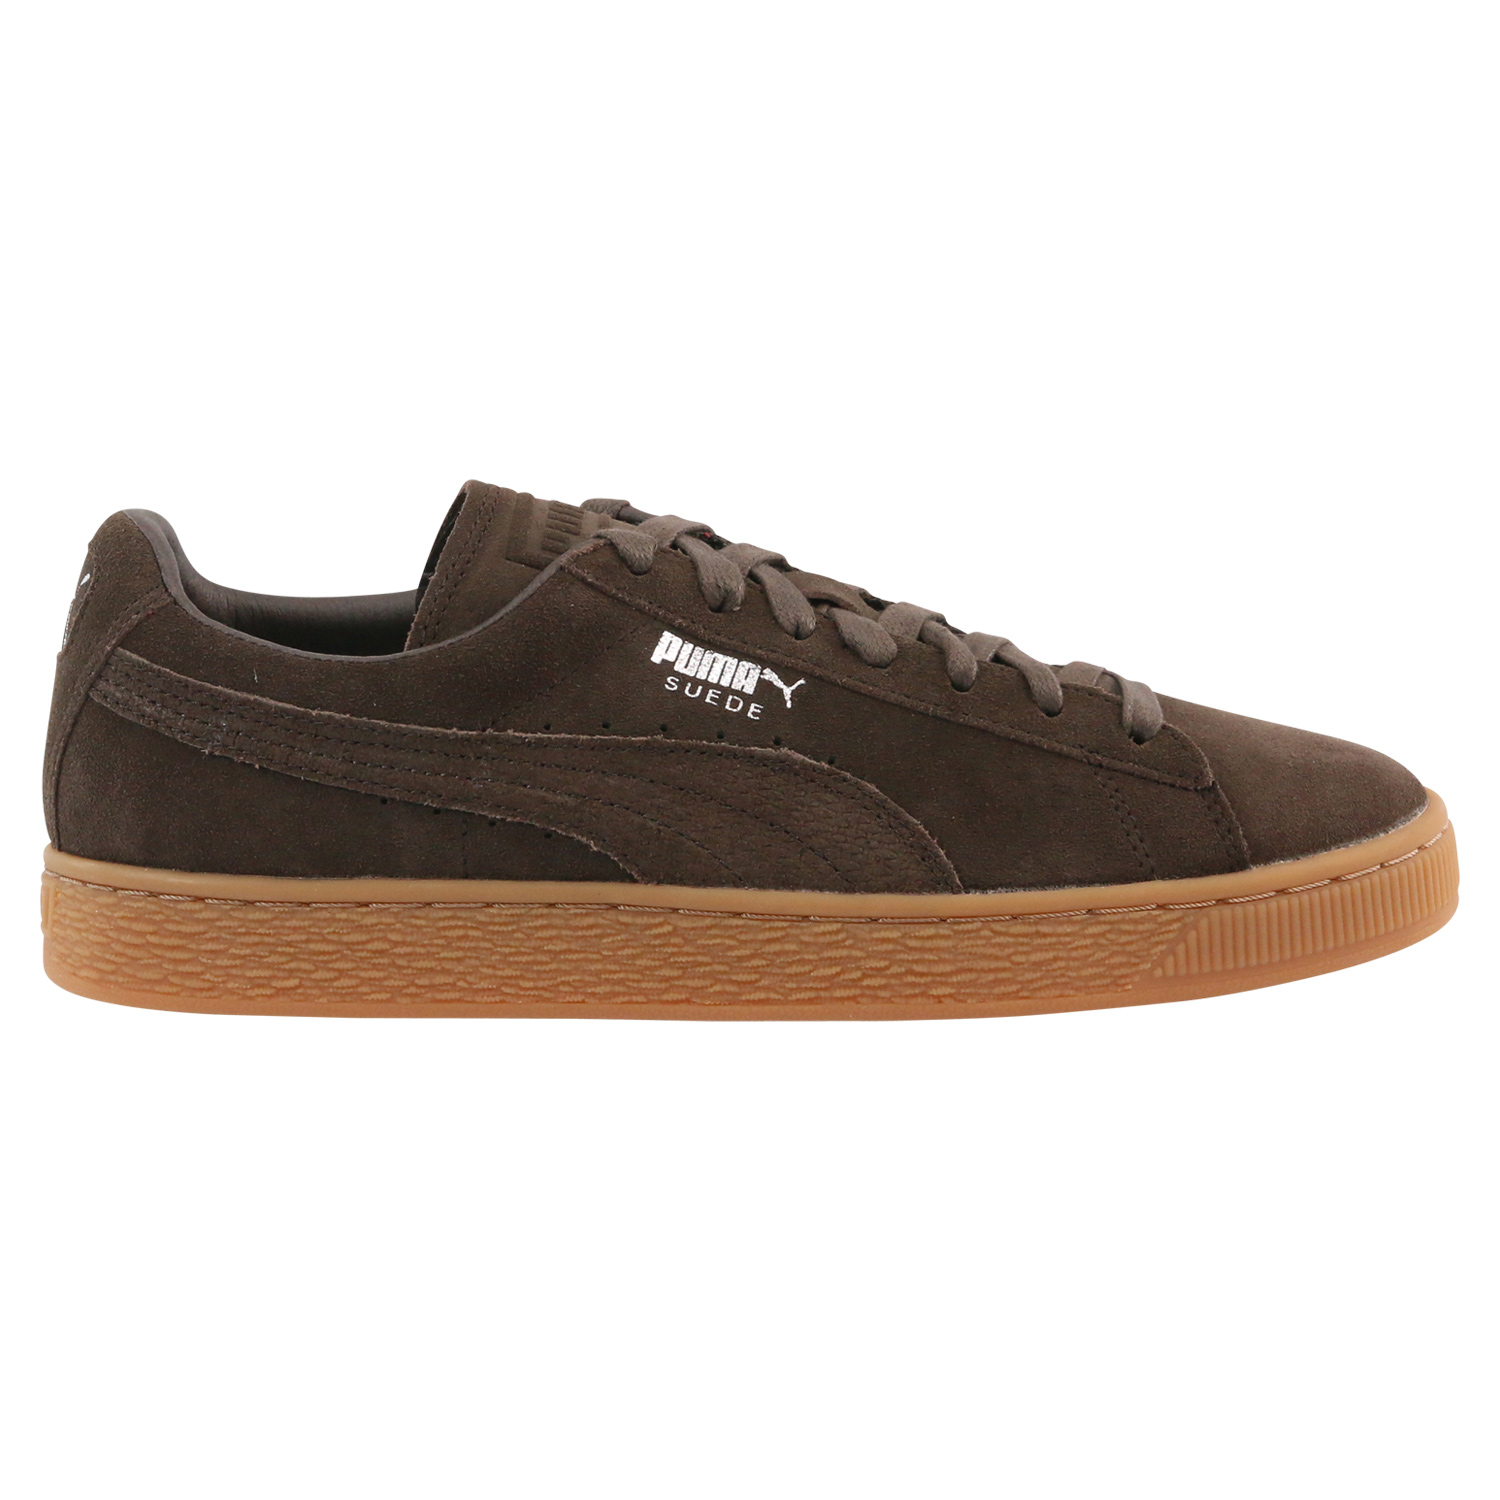 puma suede classic citi schuhe turnschuhe sneaker herren 362551 01 braun ebay. Black Bedroom Furniture Sets. Home Design Ideas